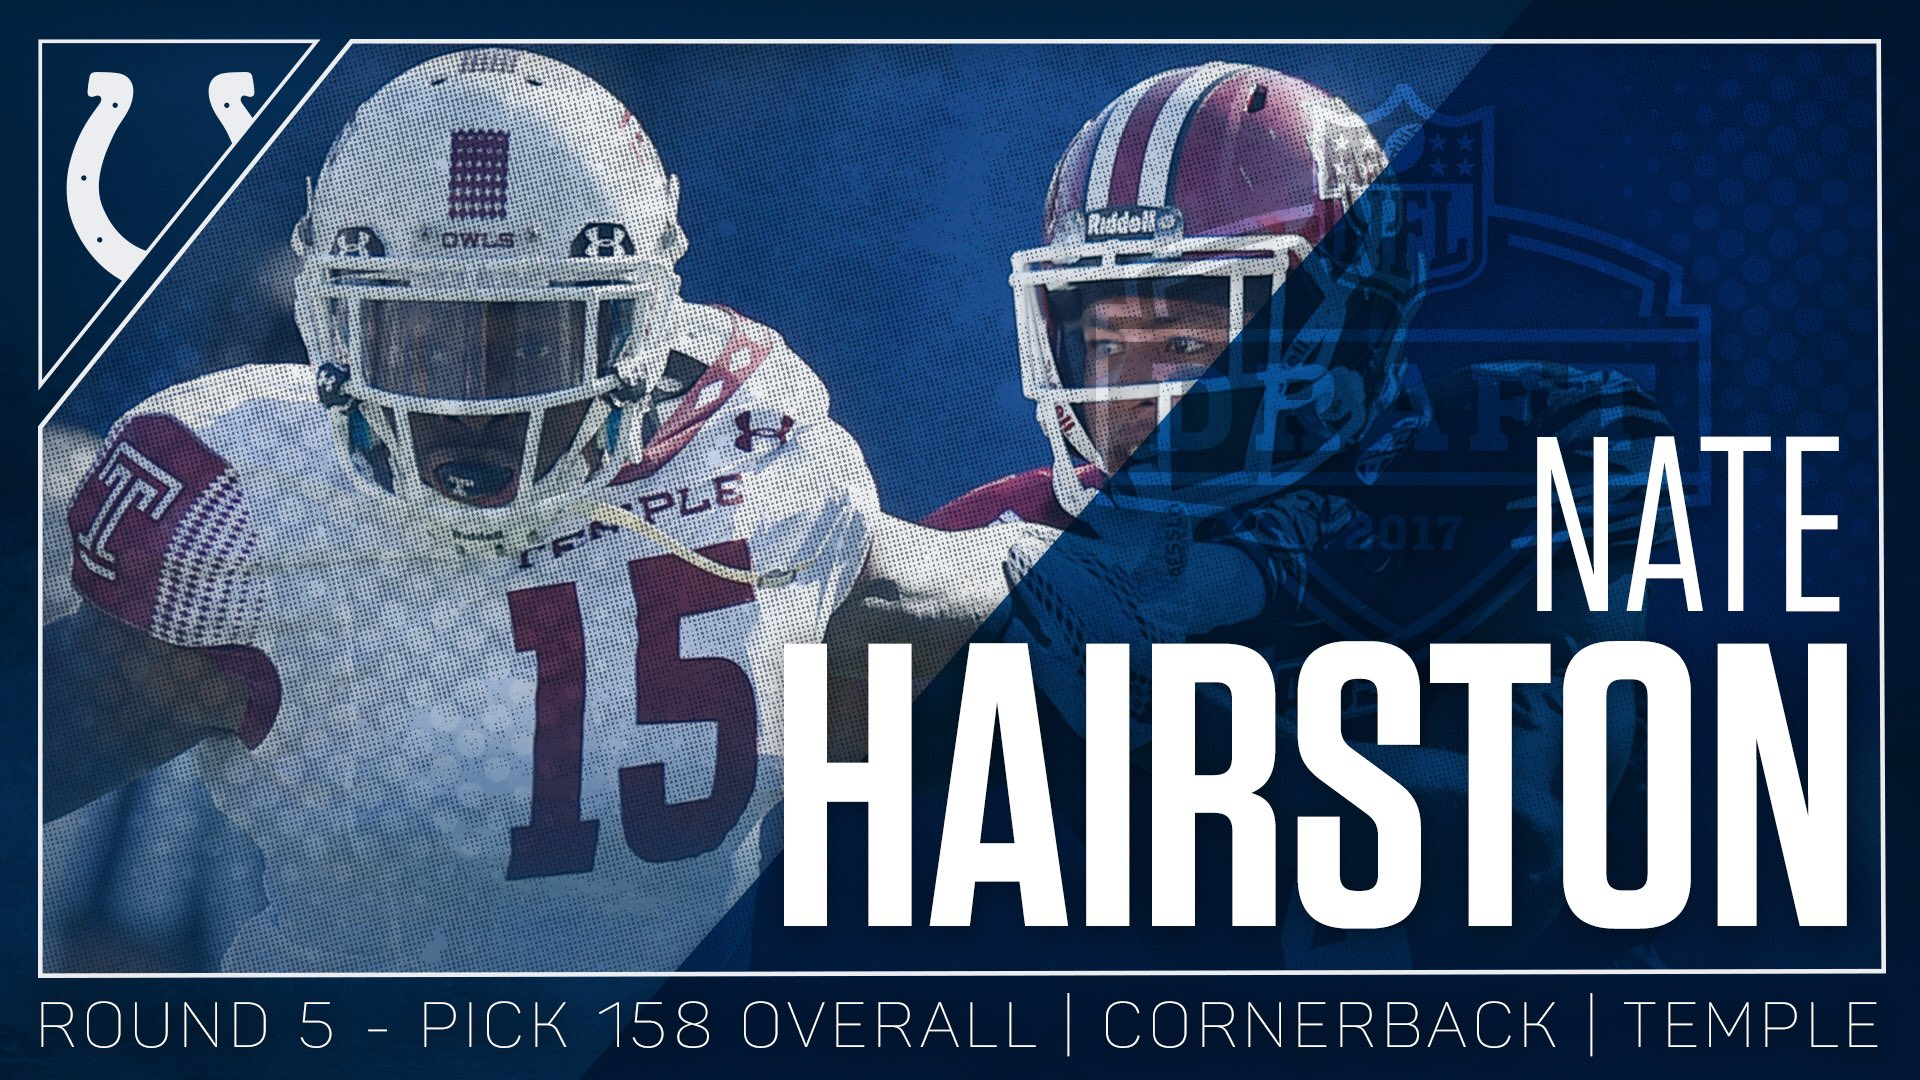 Welcome to the horseshoe, Nate Hairston! #ColtsDraft https://t.co/PBfvDWAYVY